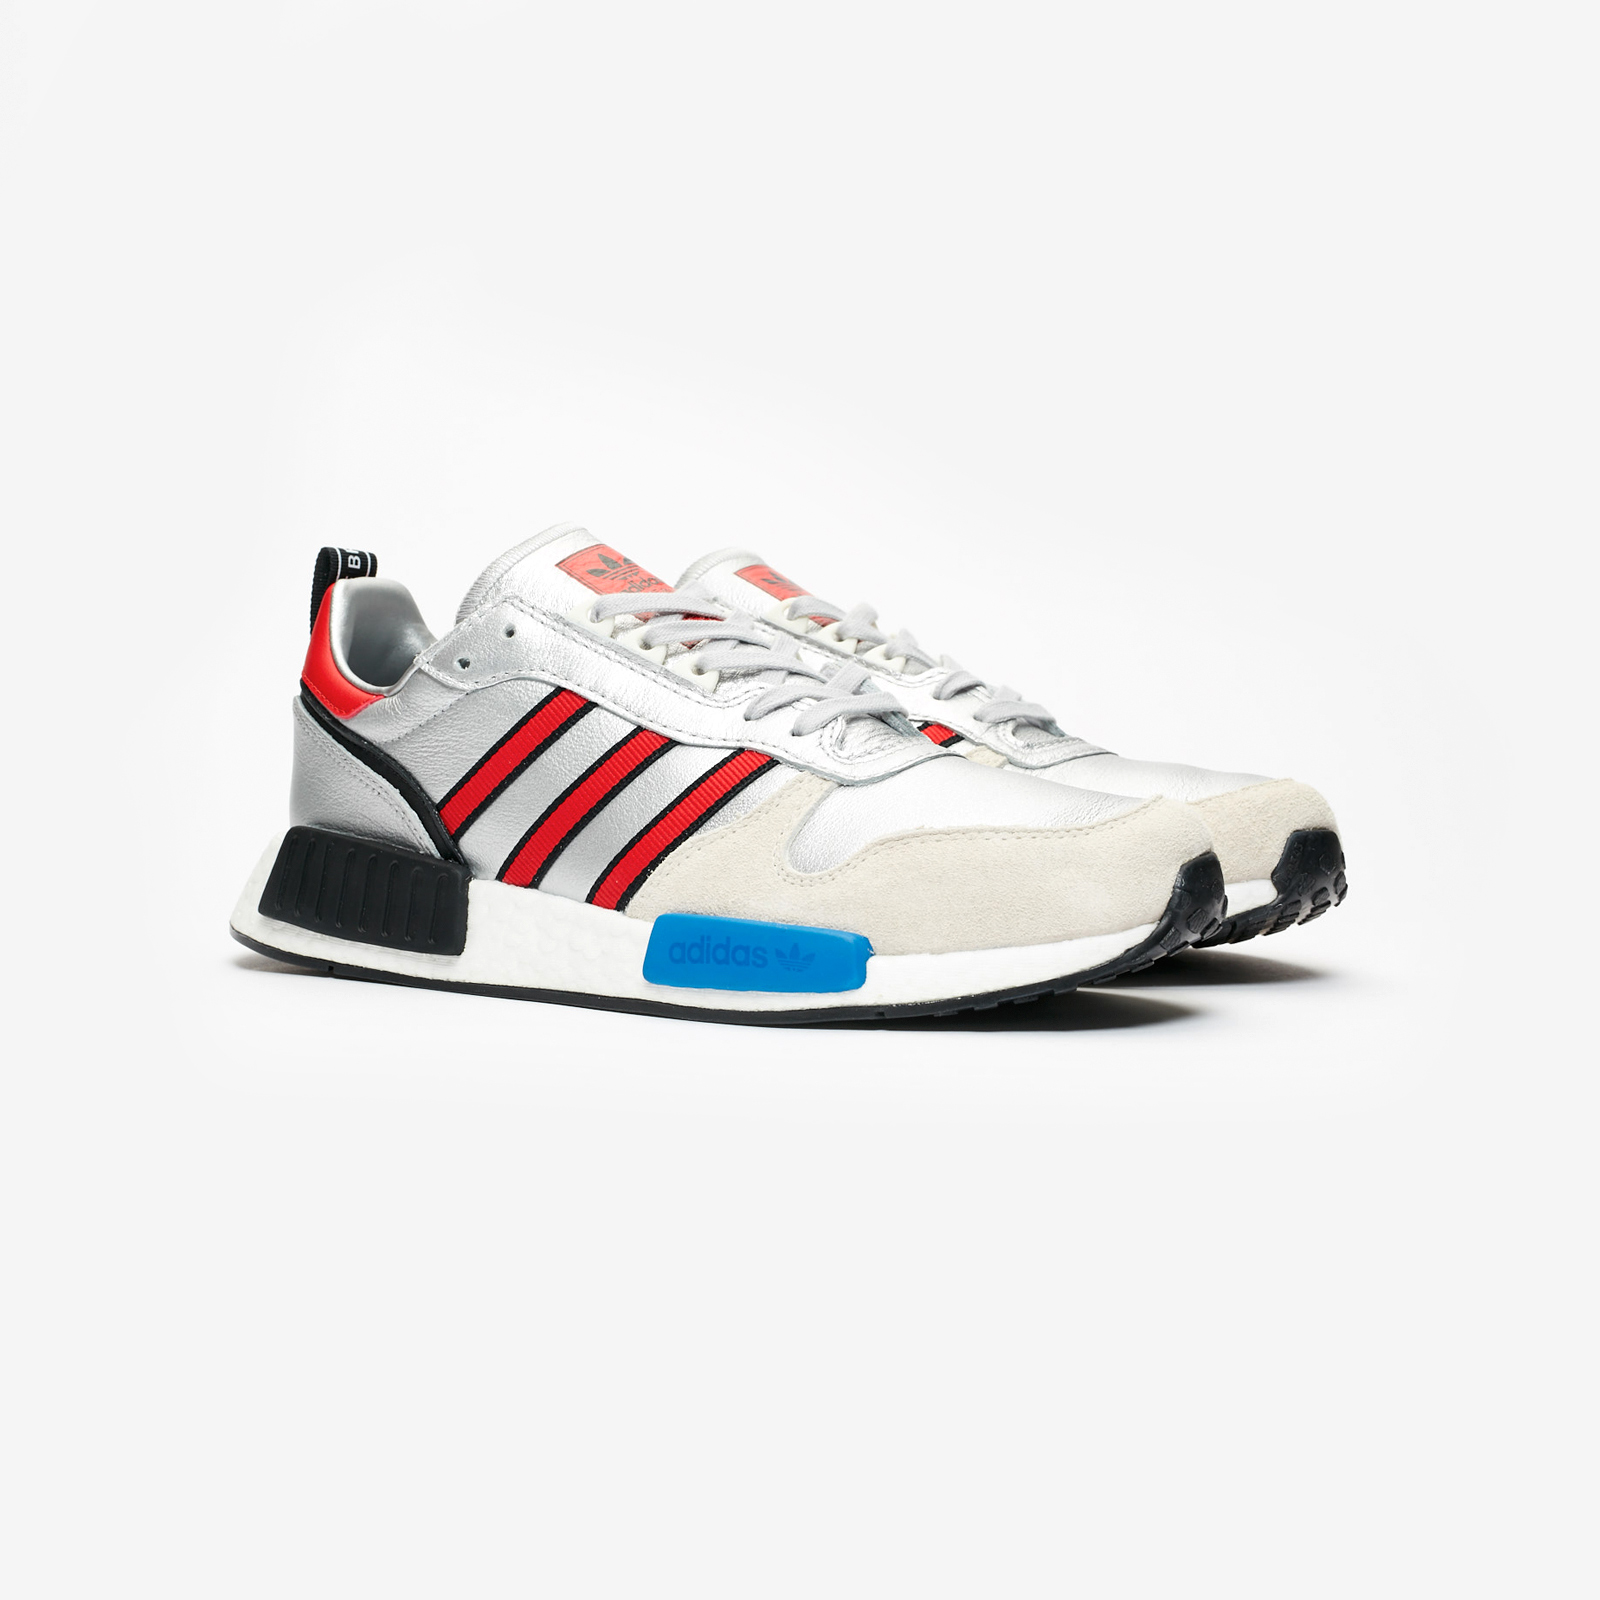 separation shoes ed30a 86f1f adidas Rising Star x R1 - G26777 - Sneakersnstuff | sneakers ...